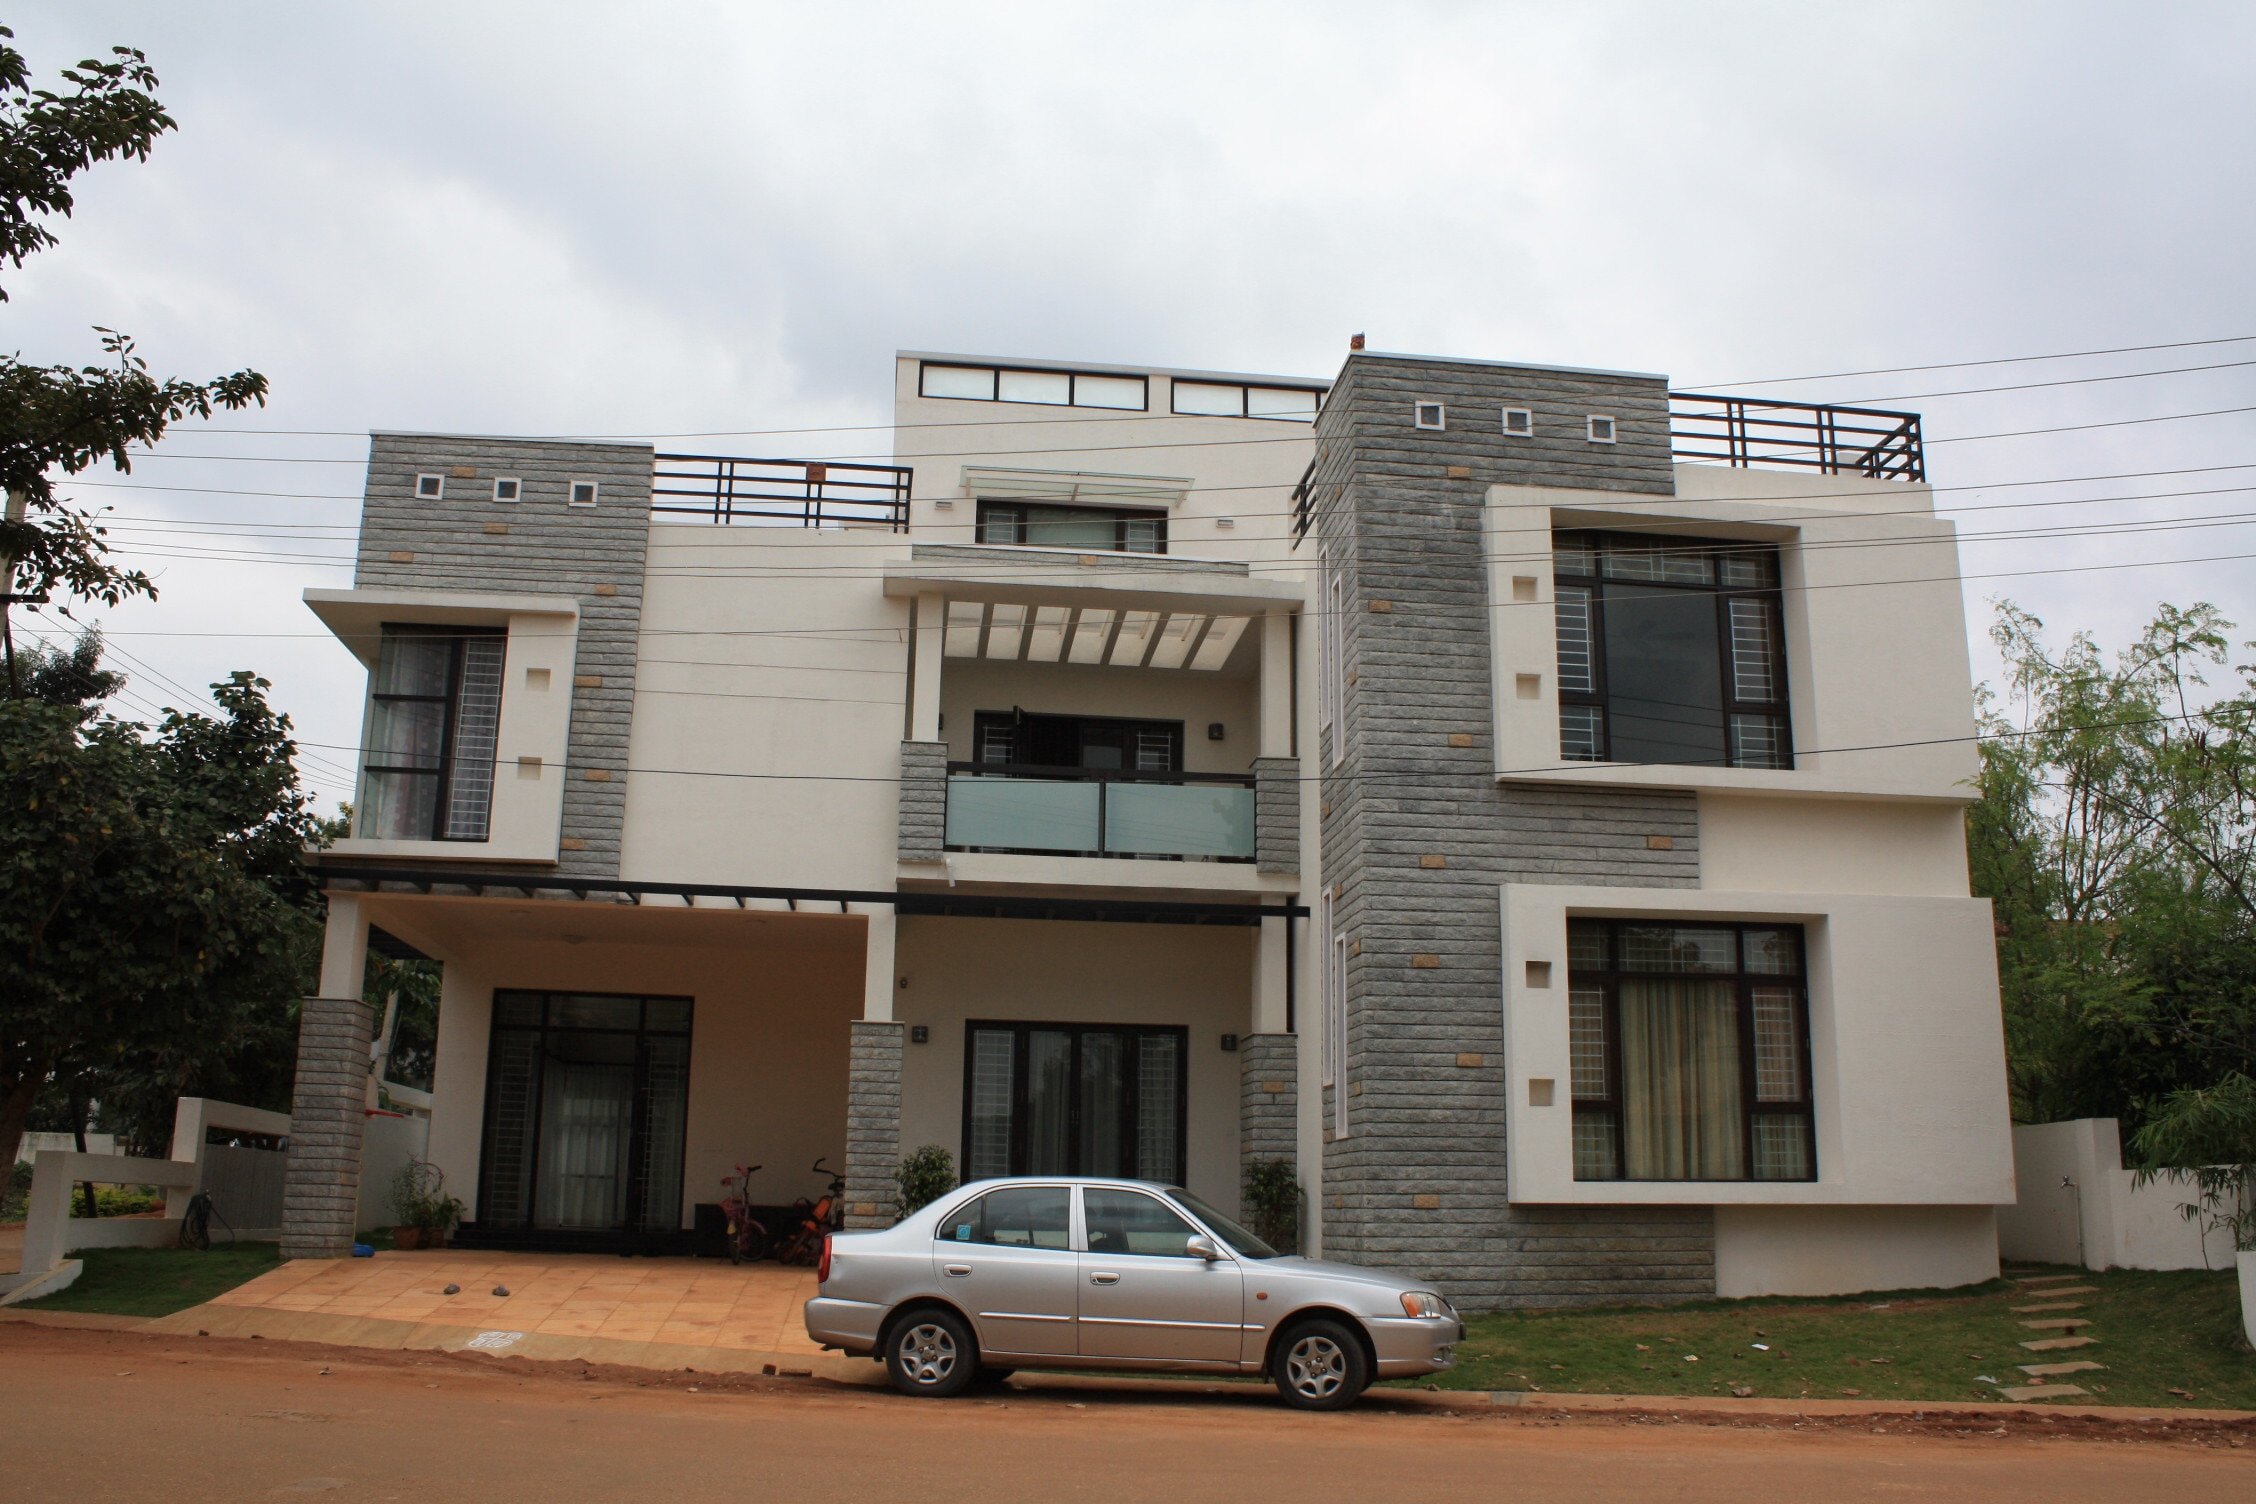 Modern architecture . contemporary elevation and latest design by top architects . leading architects in Koramangala, Bangalore. montimers 08025534834 08041677116 www.montimers.in htts://www.hozz.in/pro/montimers